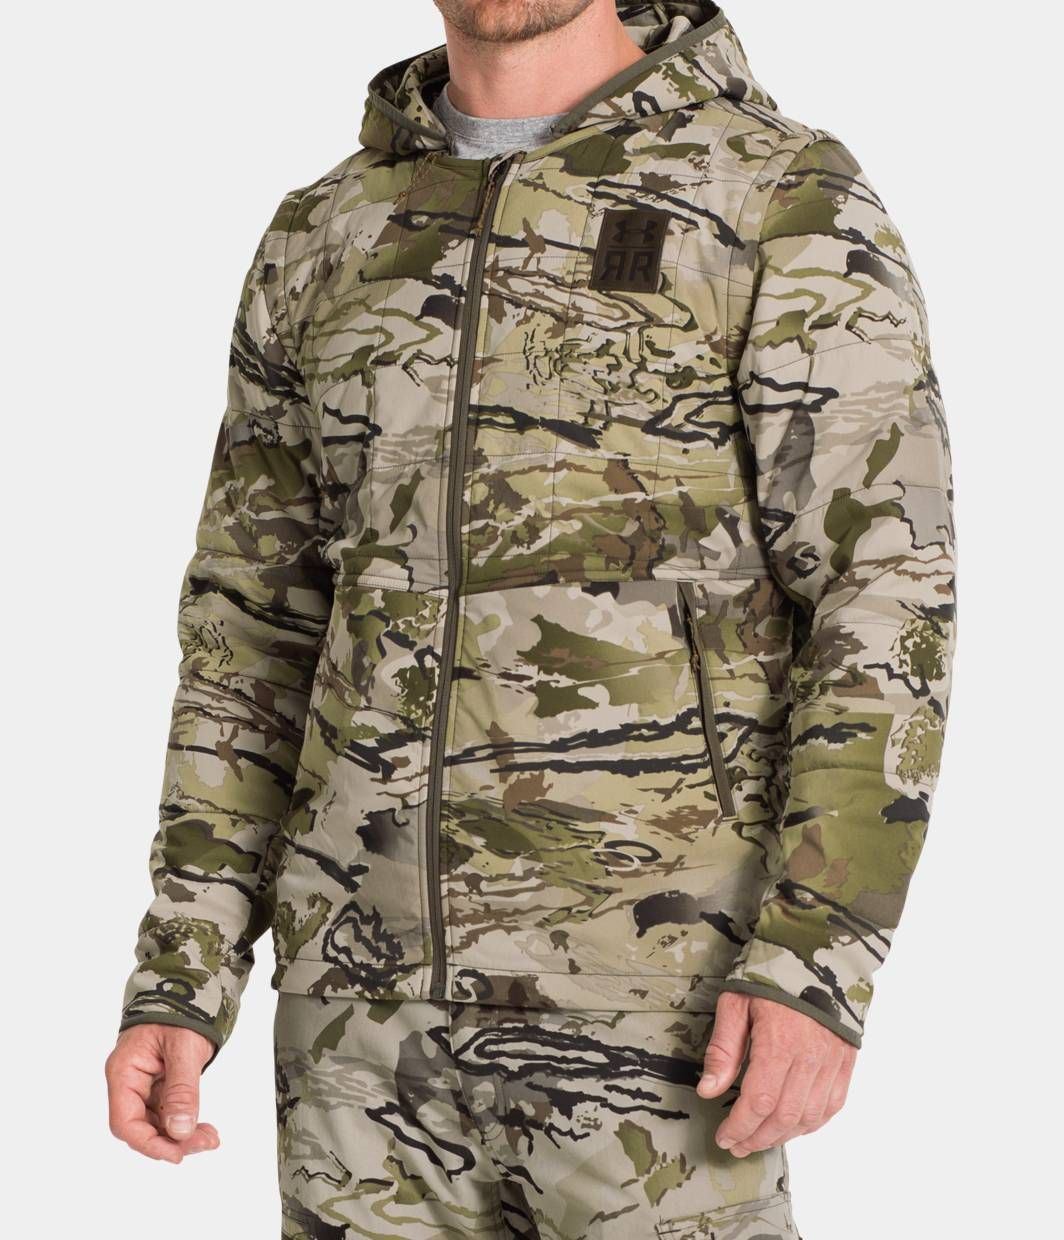 under armour hunting gear review